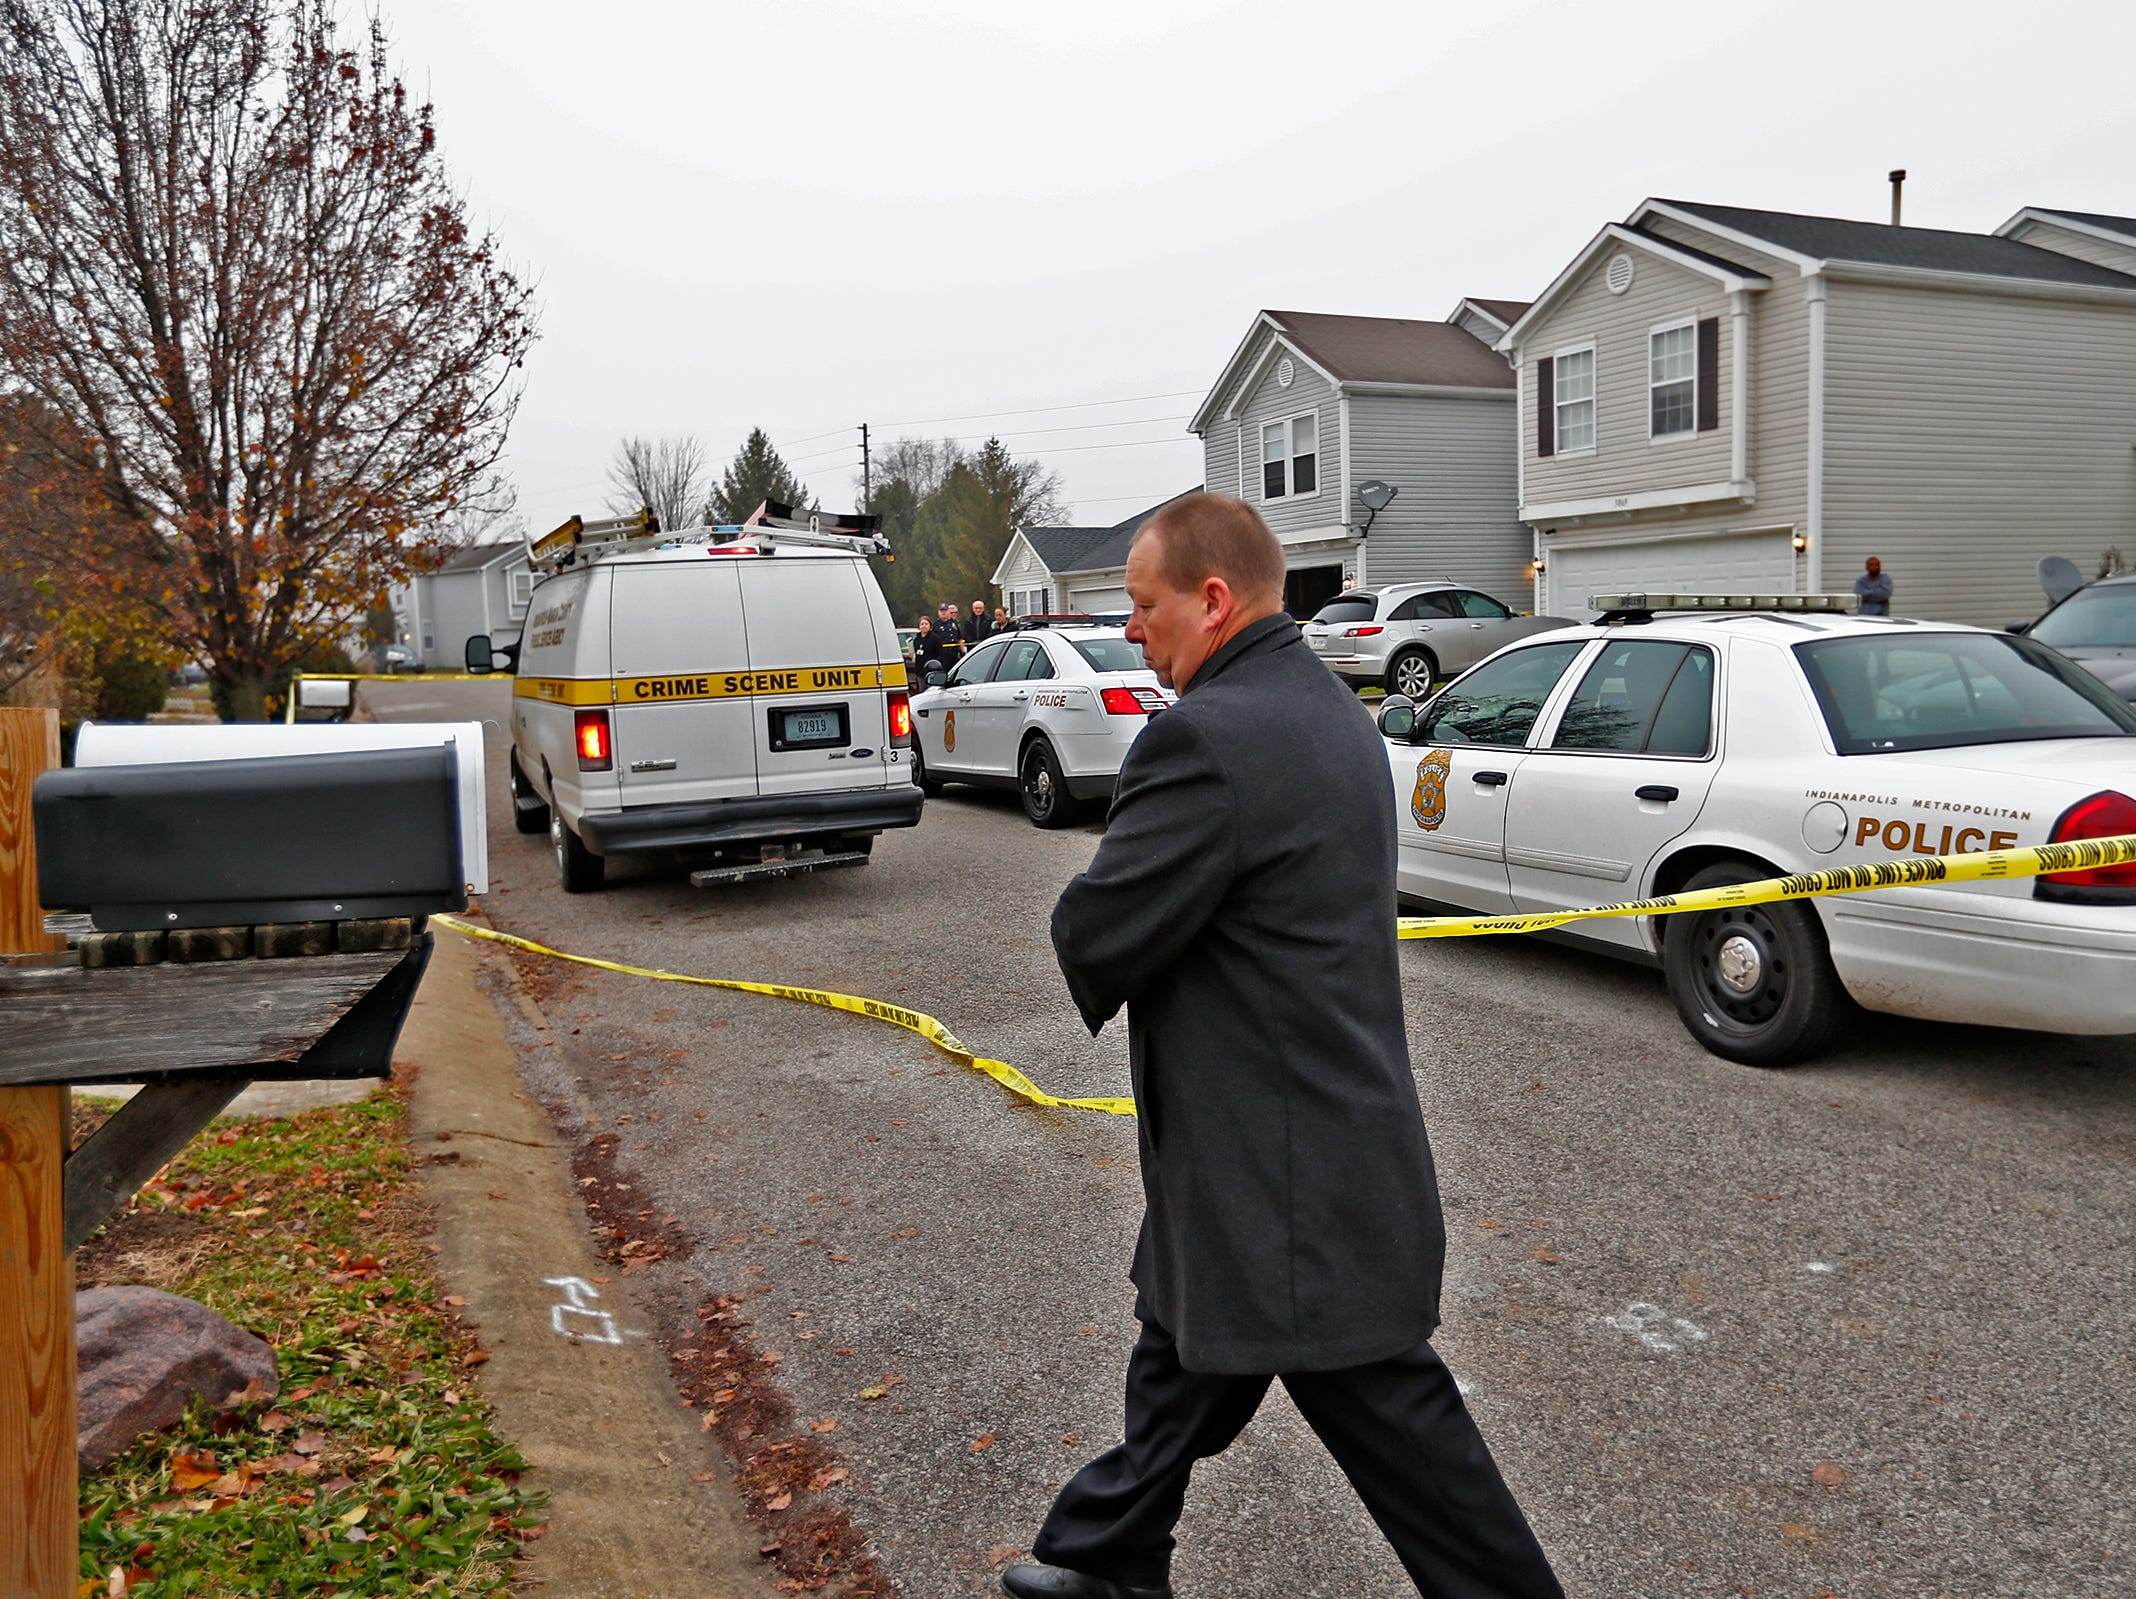 A detective replaces the police tape after letting in the Crime Scene van at the scene of a homicide in the 3800 block of Amaranth Court, Friday, Nov. 30, 2018.